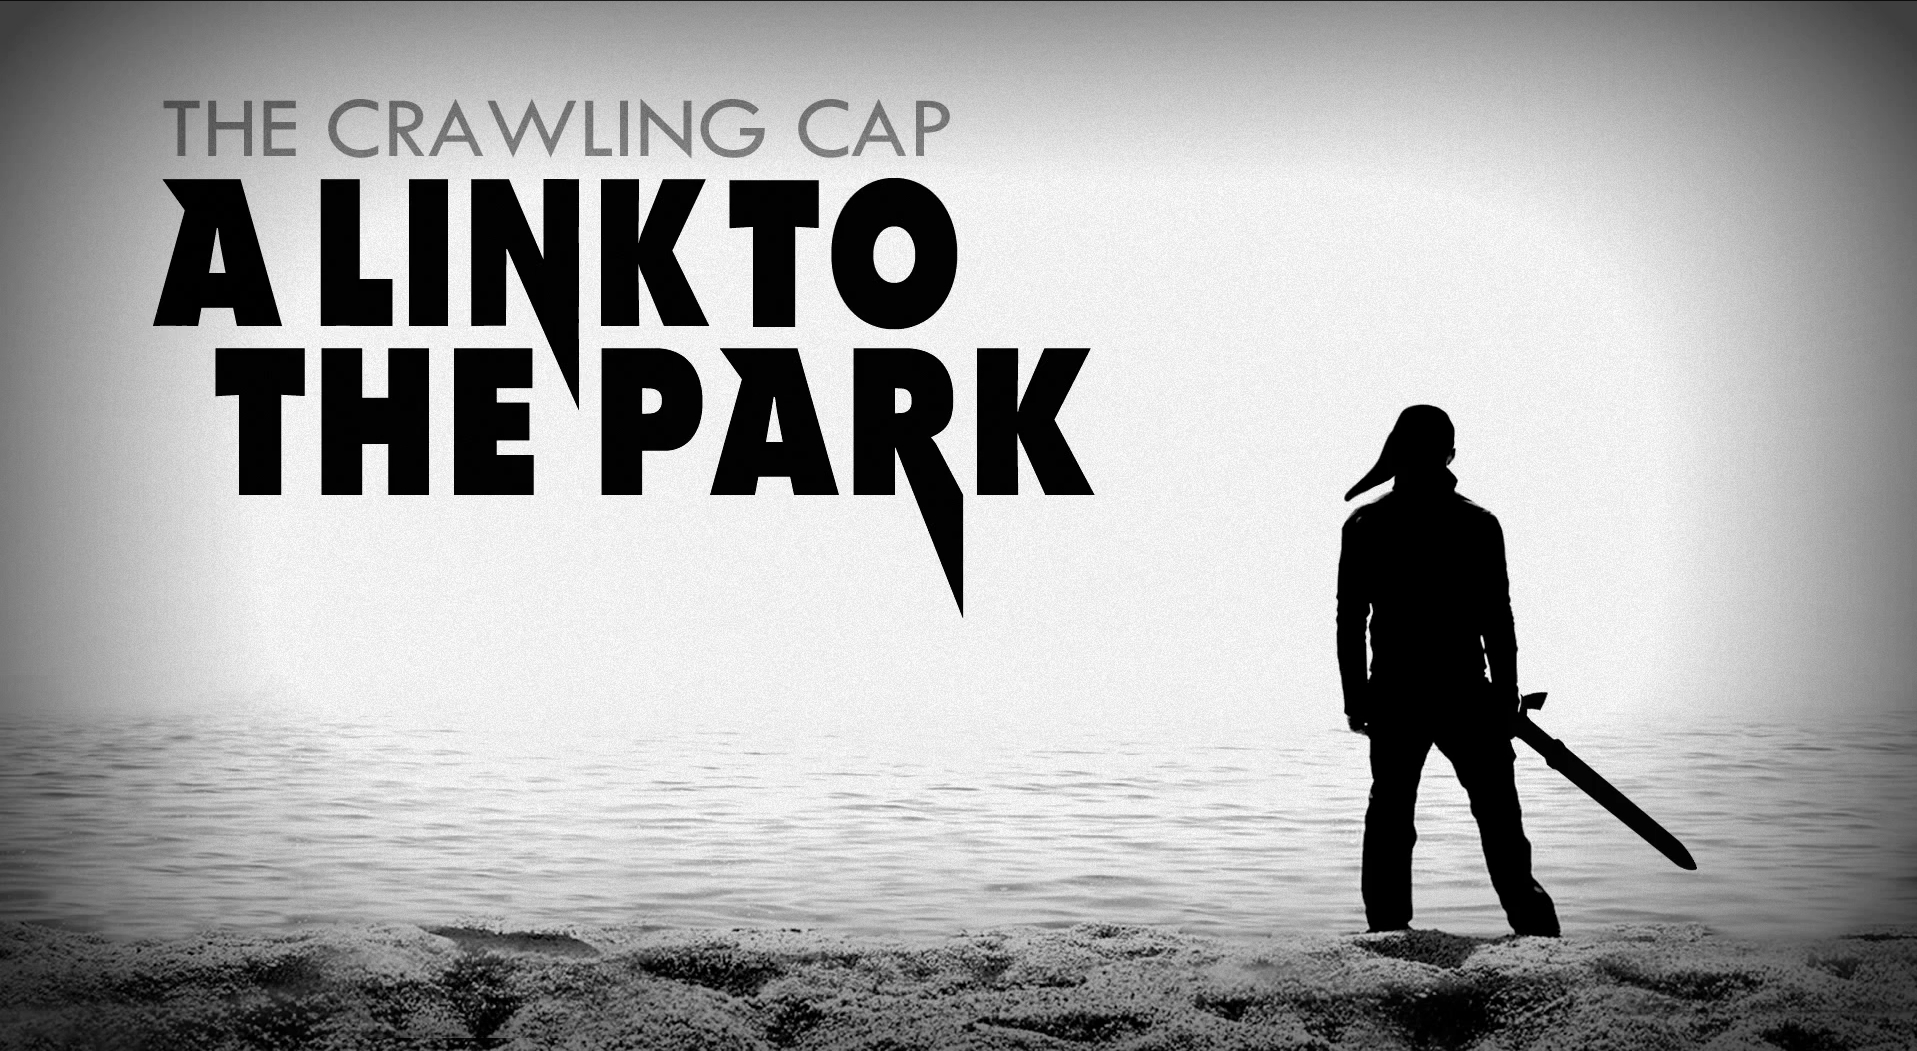 A link to the park